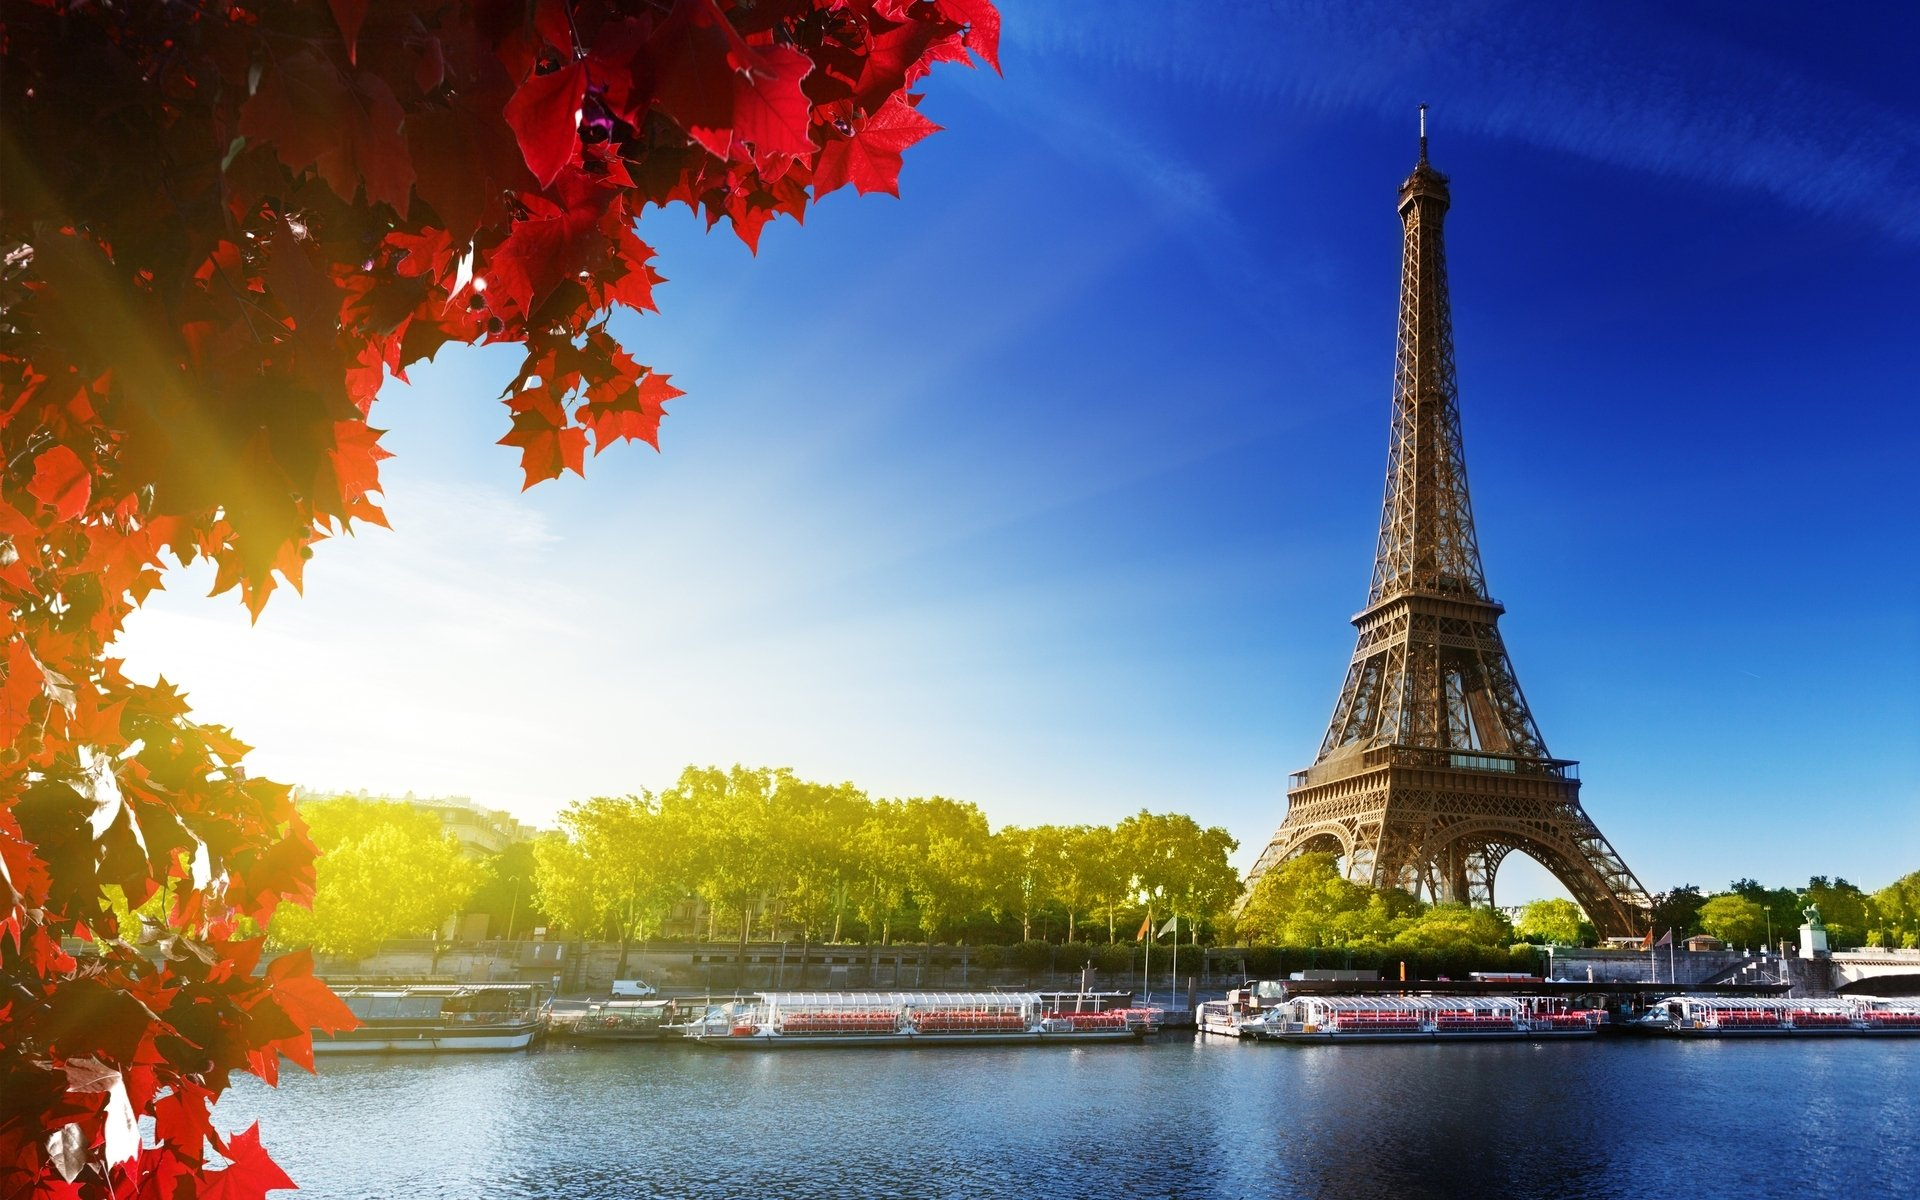 248 Eiffel Tower Hd Wallpapers Background Images Wallpaper Abyss